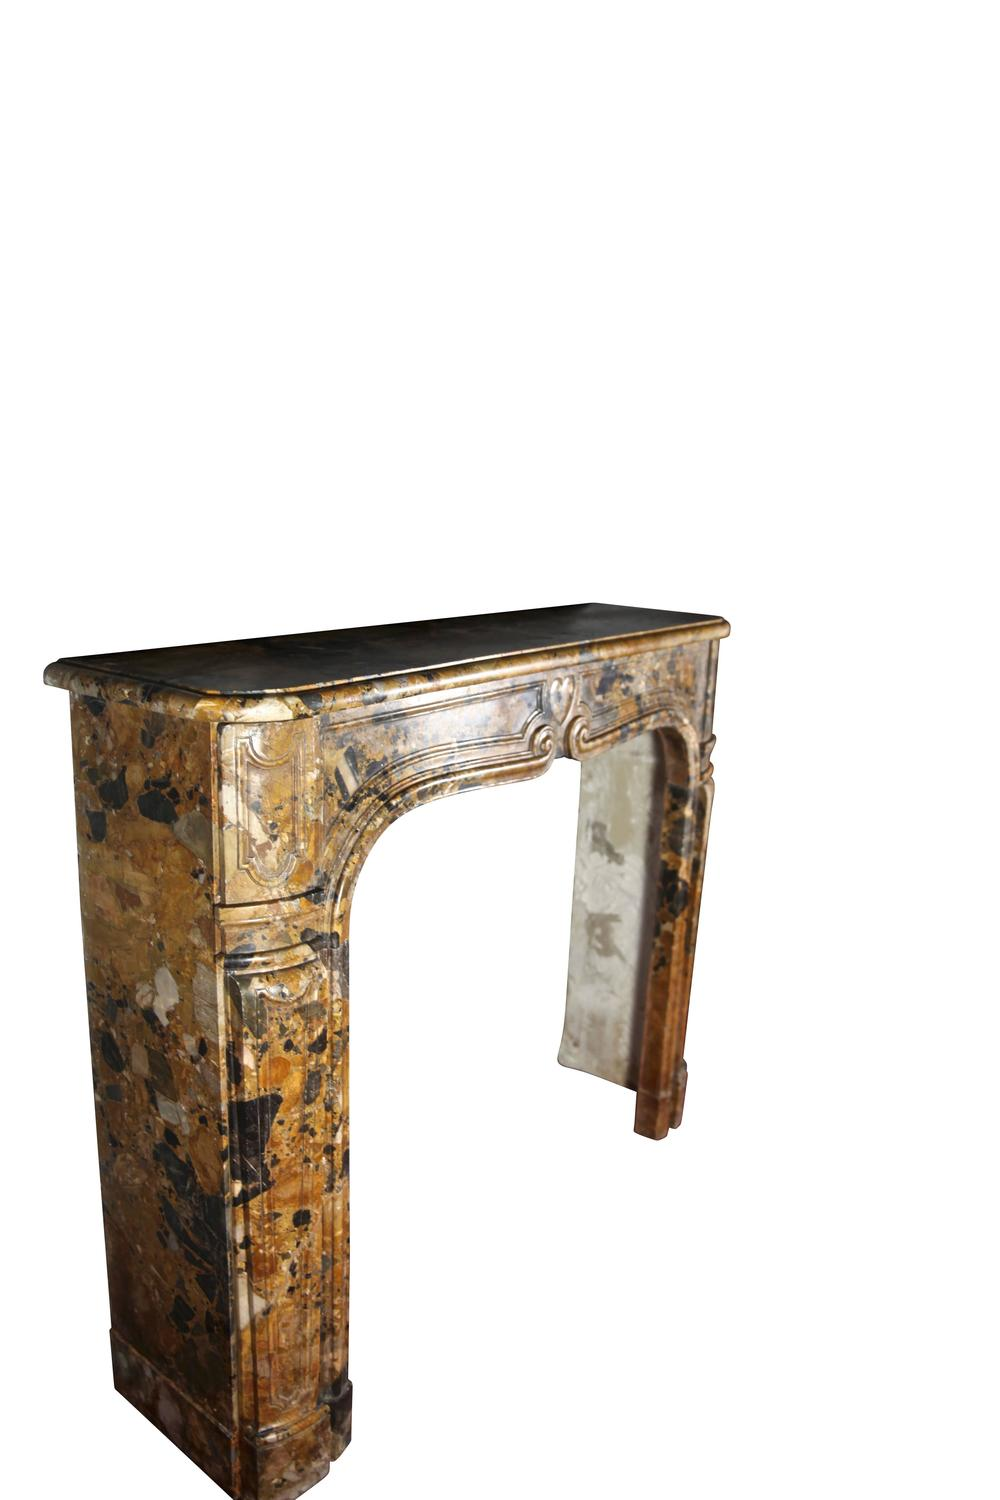 18th Century Italian Antique Fireplace Mantel In Breccia Marble Mantel For Sale At 1stdibs